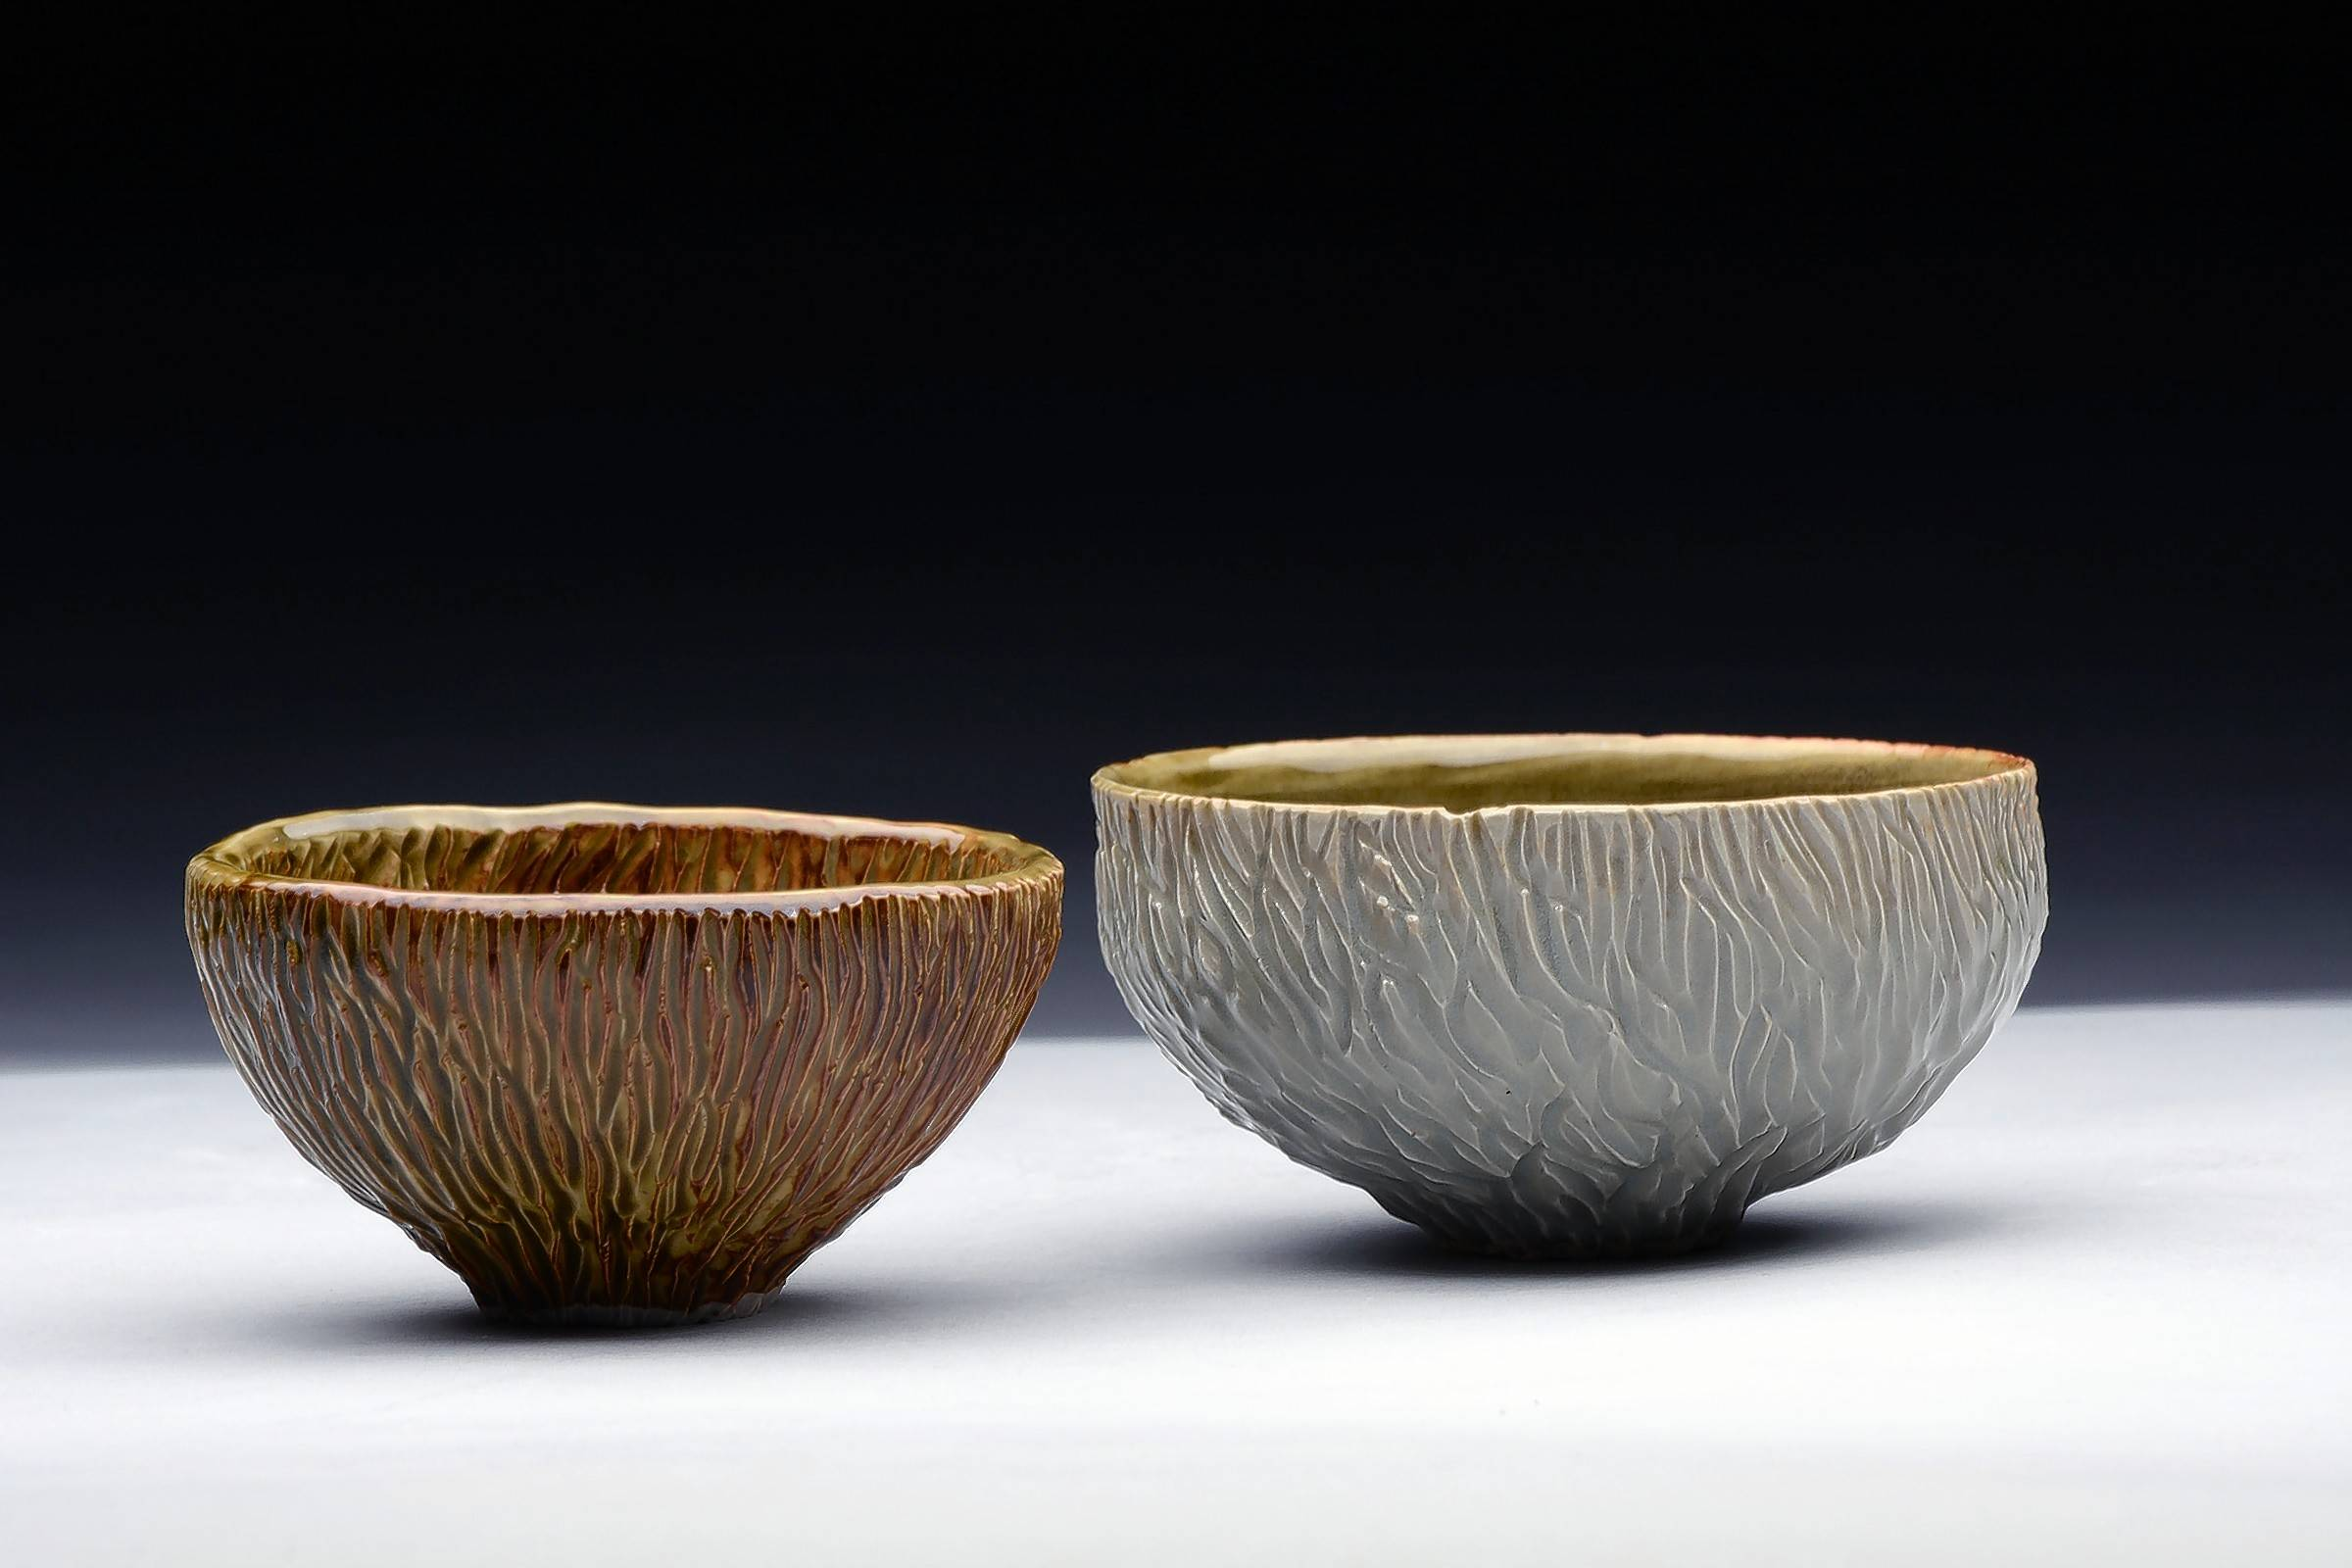 Ceramics will be featured at Waubonsee's downtown campus for the Student Ceramic Exhibit during First Fridays on Oct. 6.